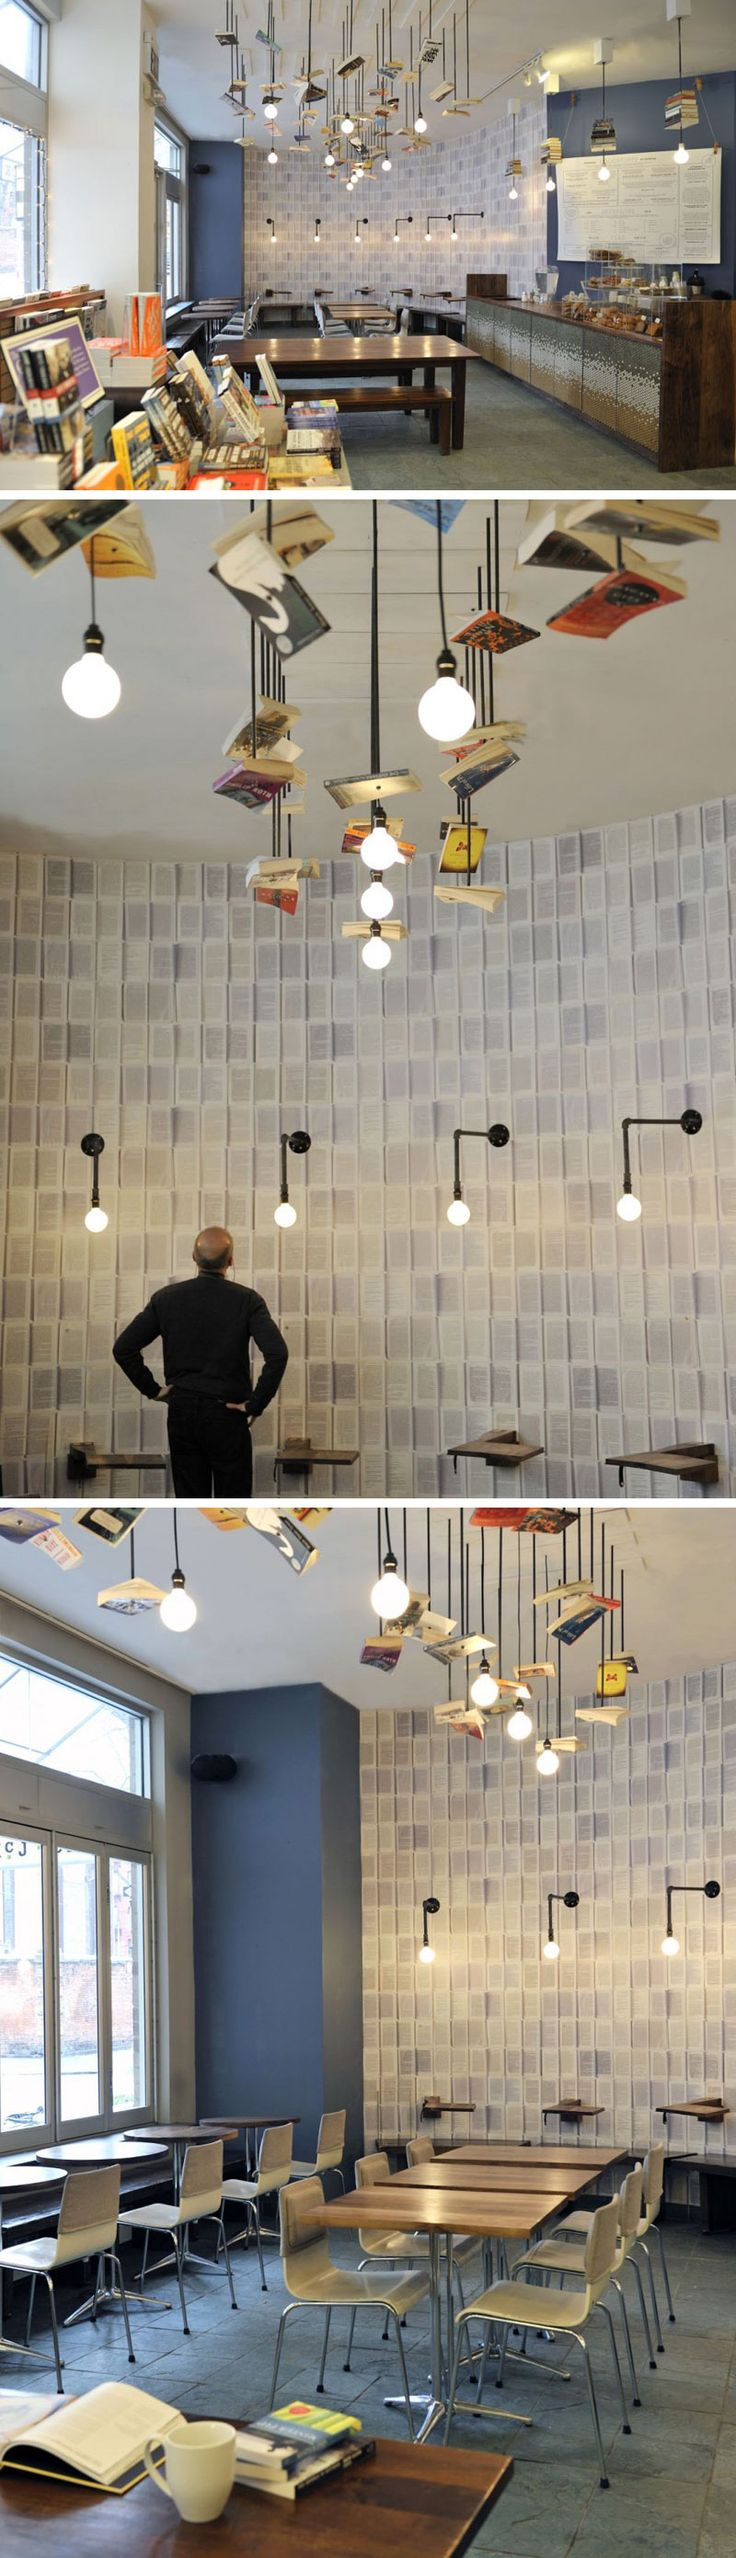 Prague commercial interior design news mindful design consulting - 10 North American Coffee Shops That Are Distinctive In Their Design